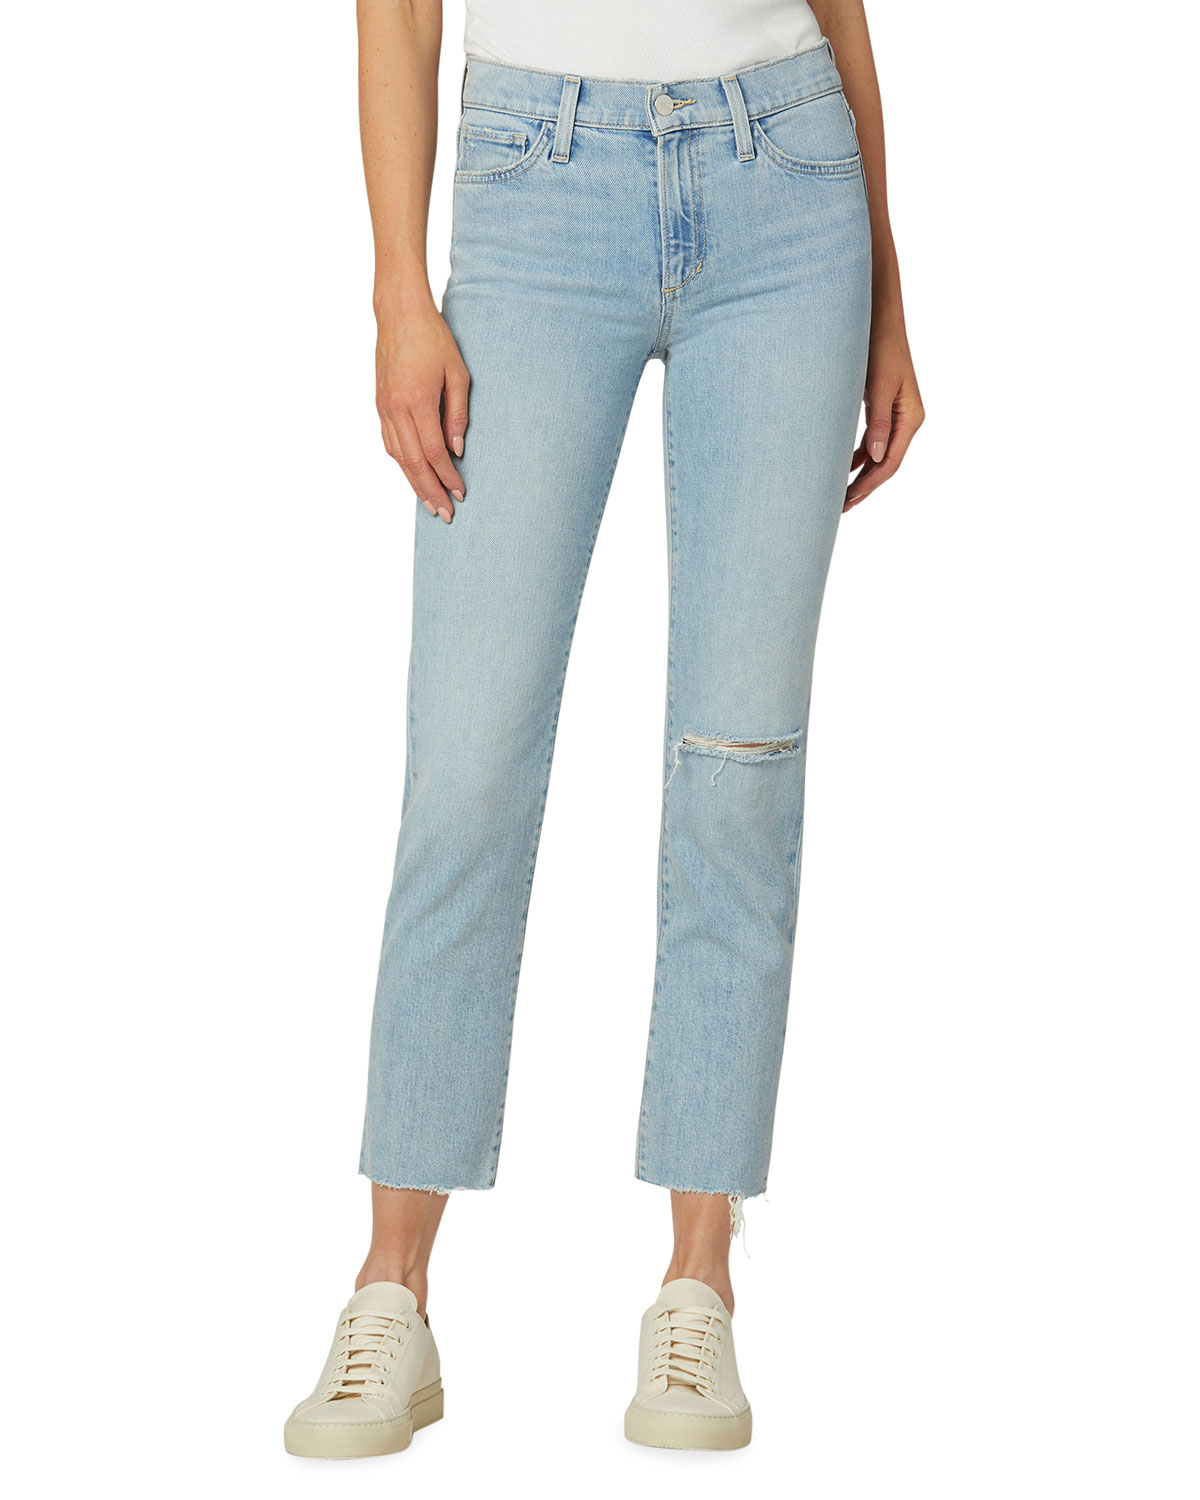 The Lara Cropped Mid-Rise Jeans